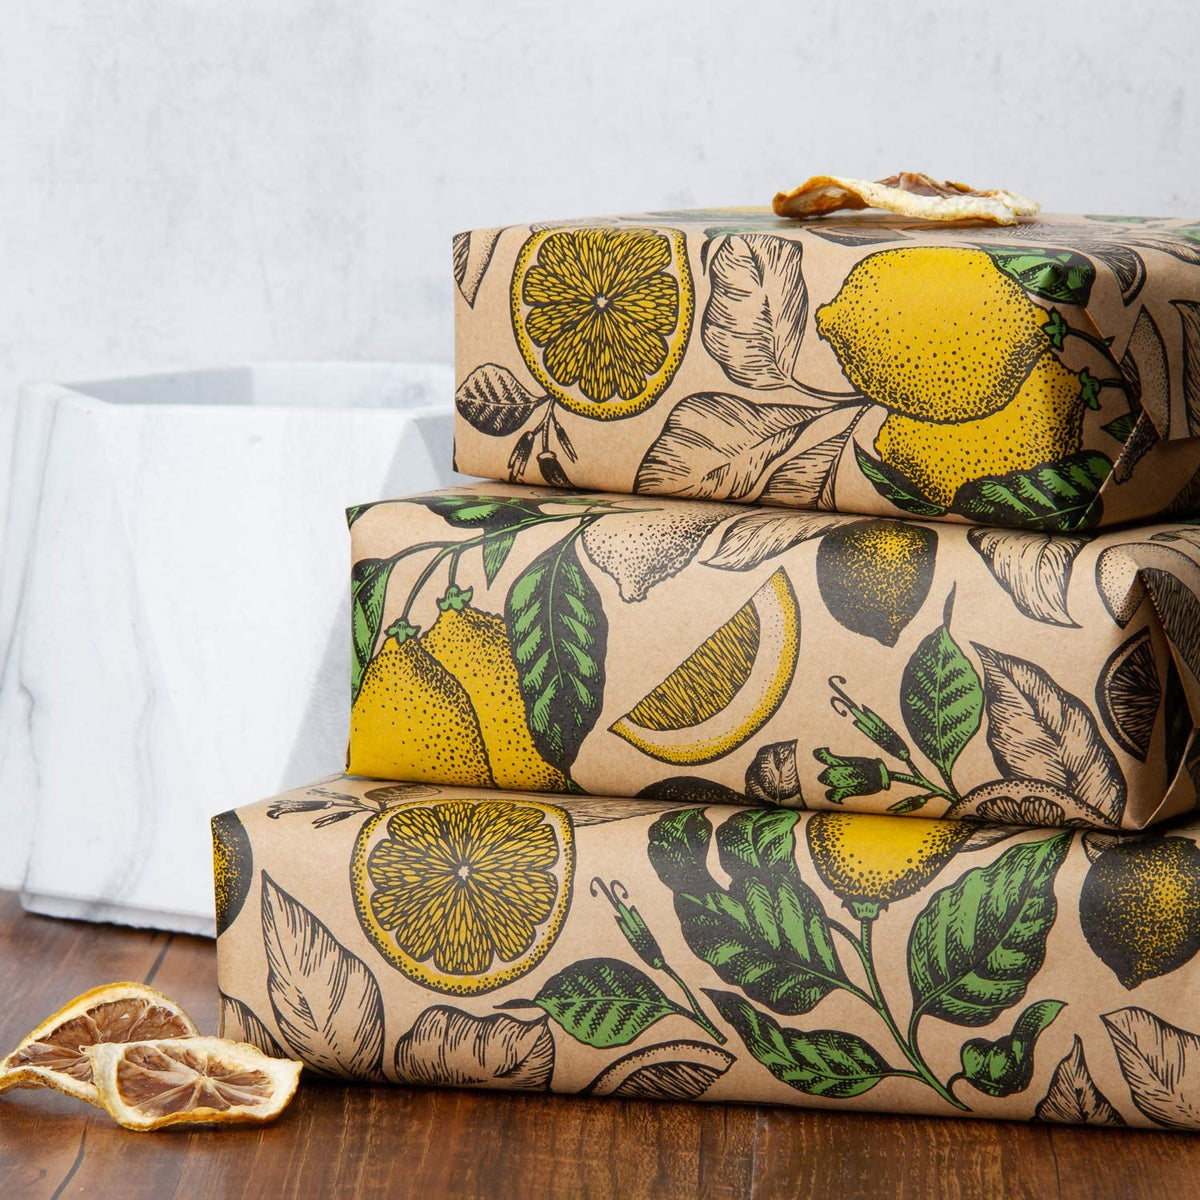 Wrapaholic-Lemon-Kraft-Gift-Wrapping-Paper-5